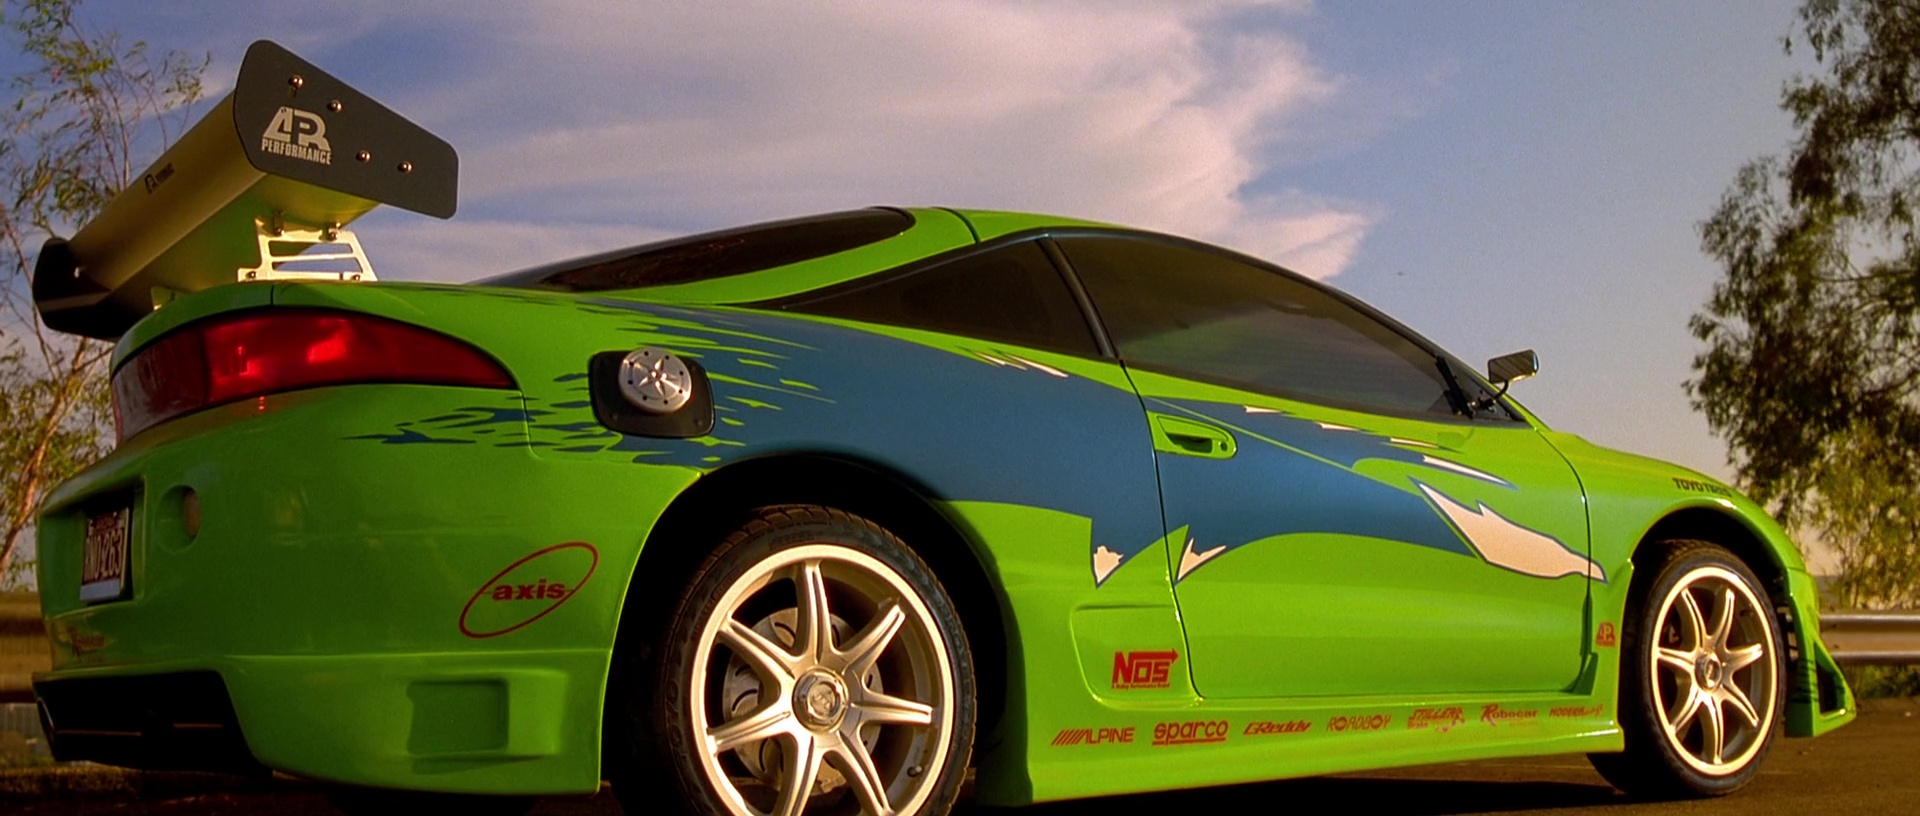 Fast And Furious 1 Cars: Vin Diesel: Custom Fast & Furious Xbox One S Auctioned For